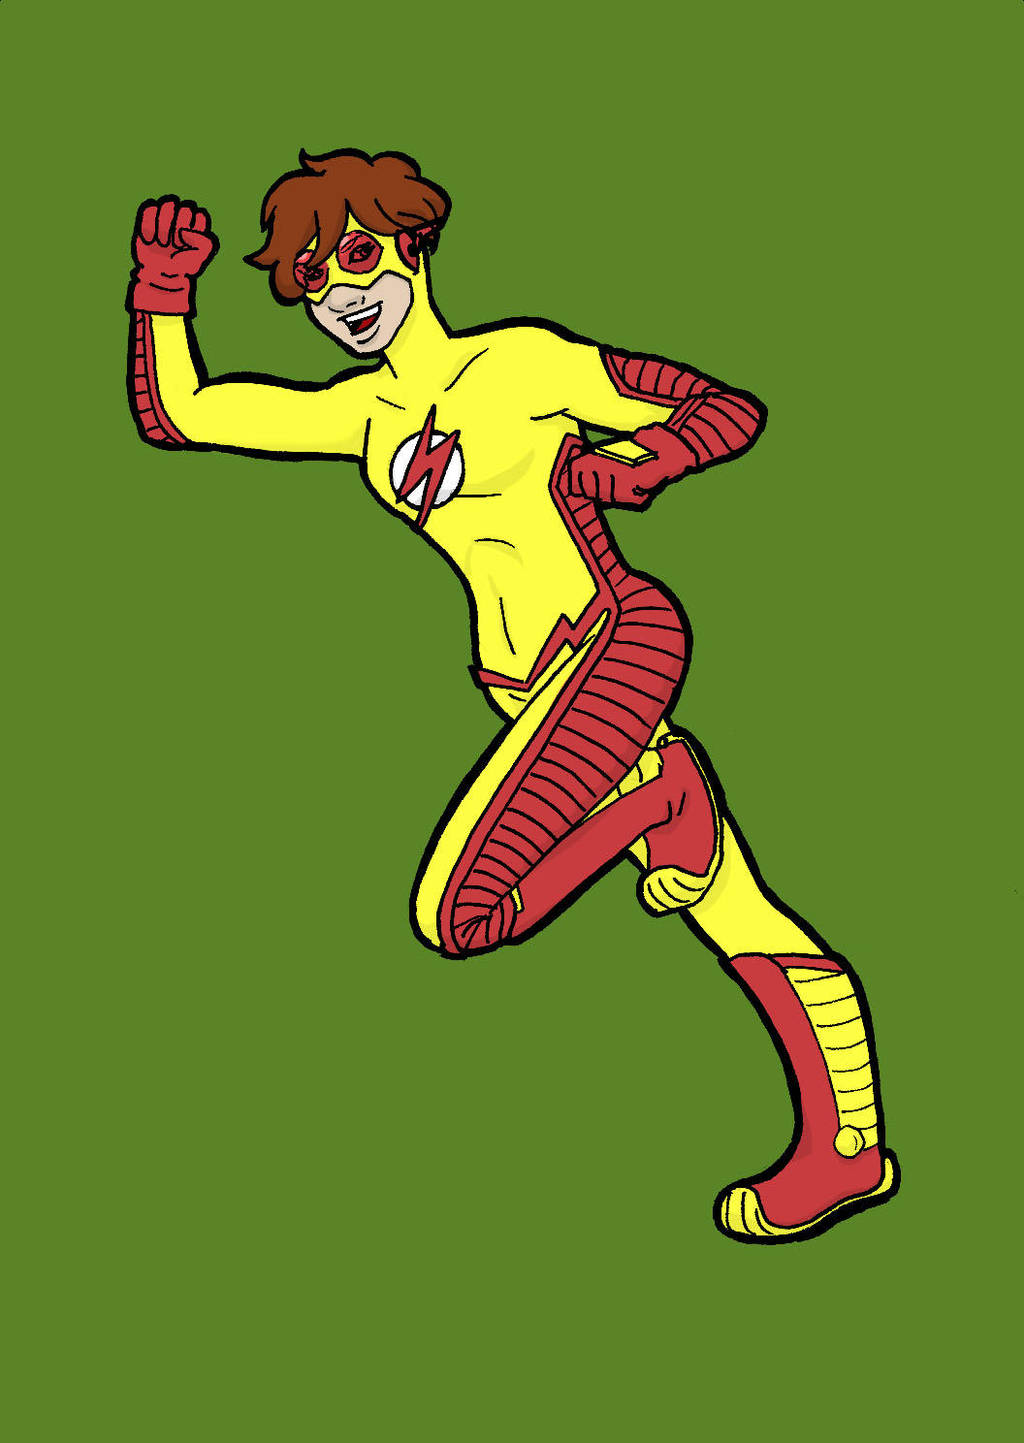 TT Char Ref: Kid Flash by YouveGotTaste